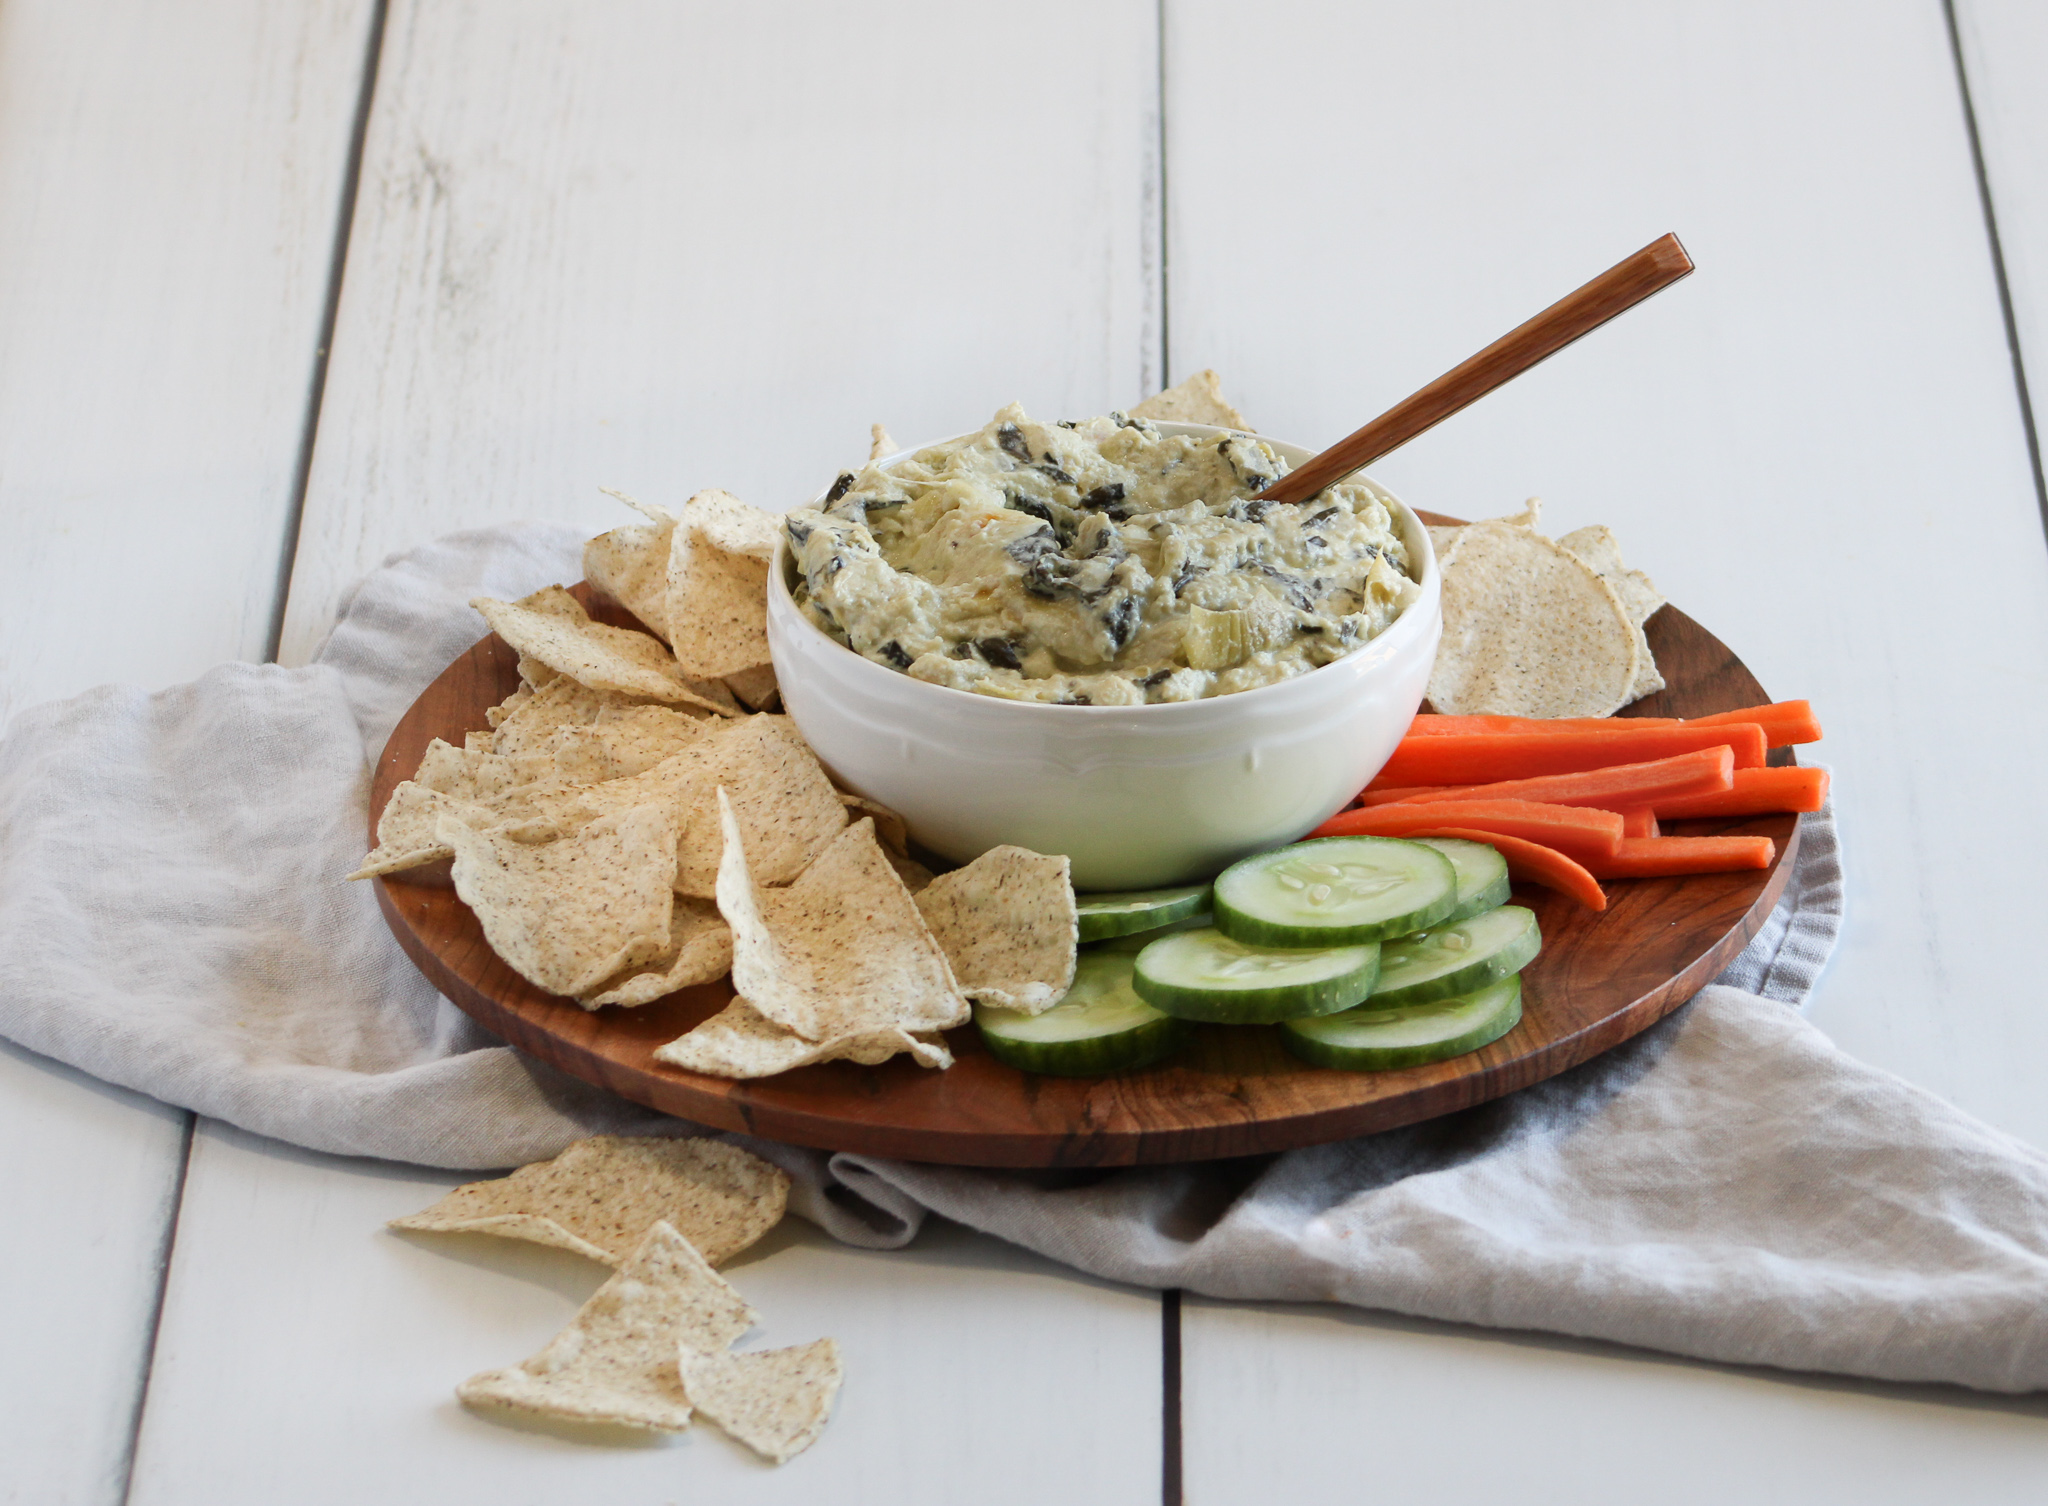 Spinach and artichoke dip sitting in a white bowl on a wooden tray surrounded by carrots, cucumber and Siete brand grain-free tortilla chips.